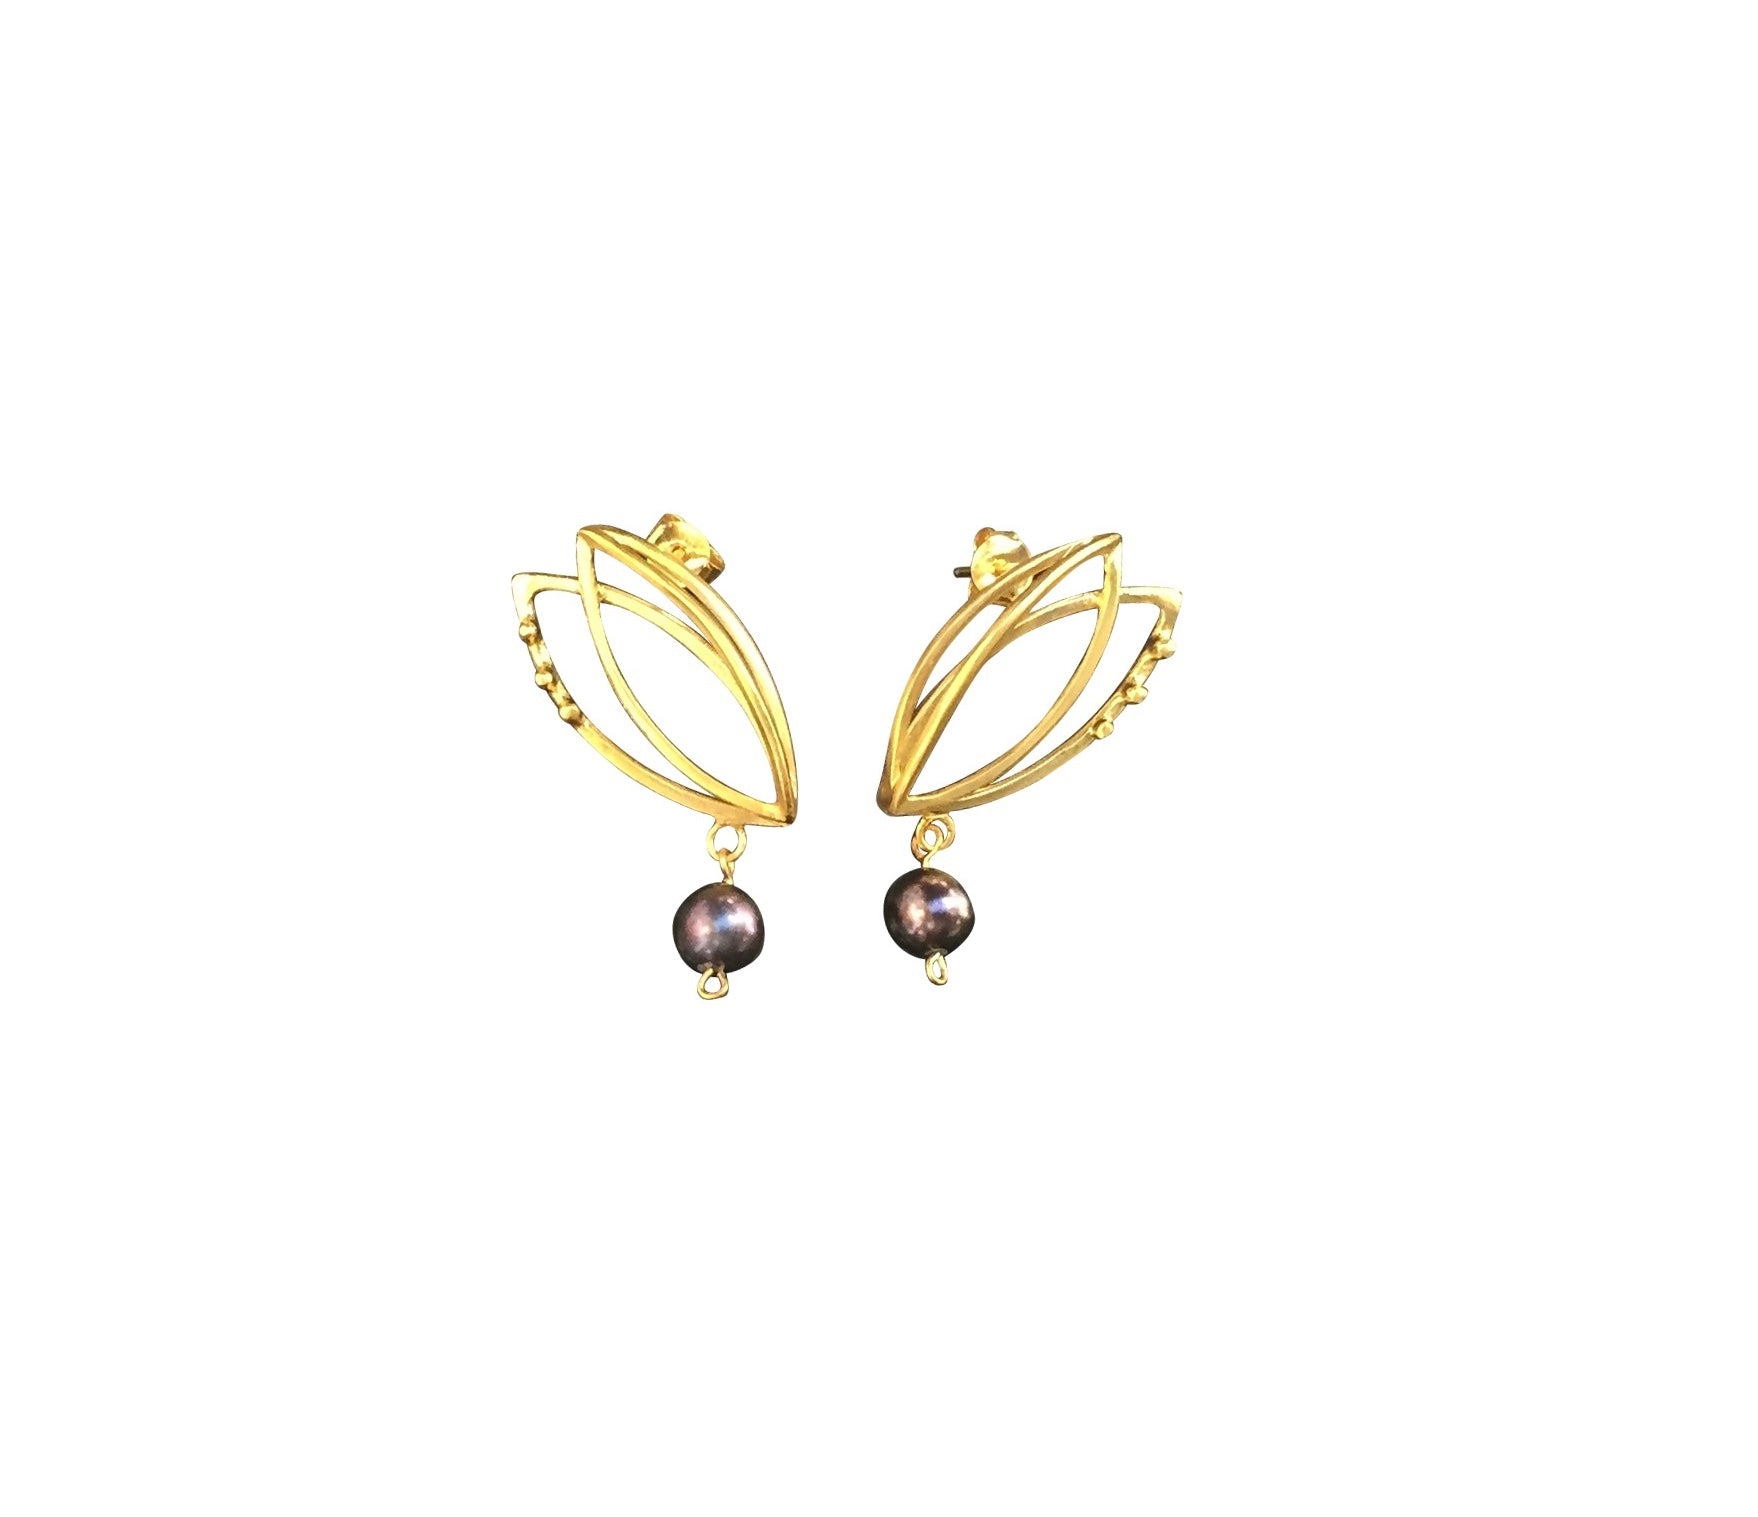 Gold tulip climbers with black pearls